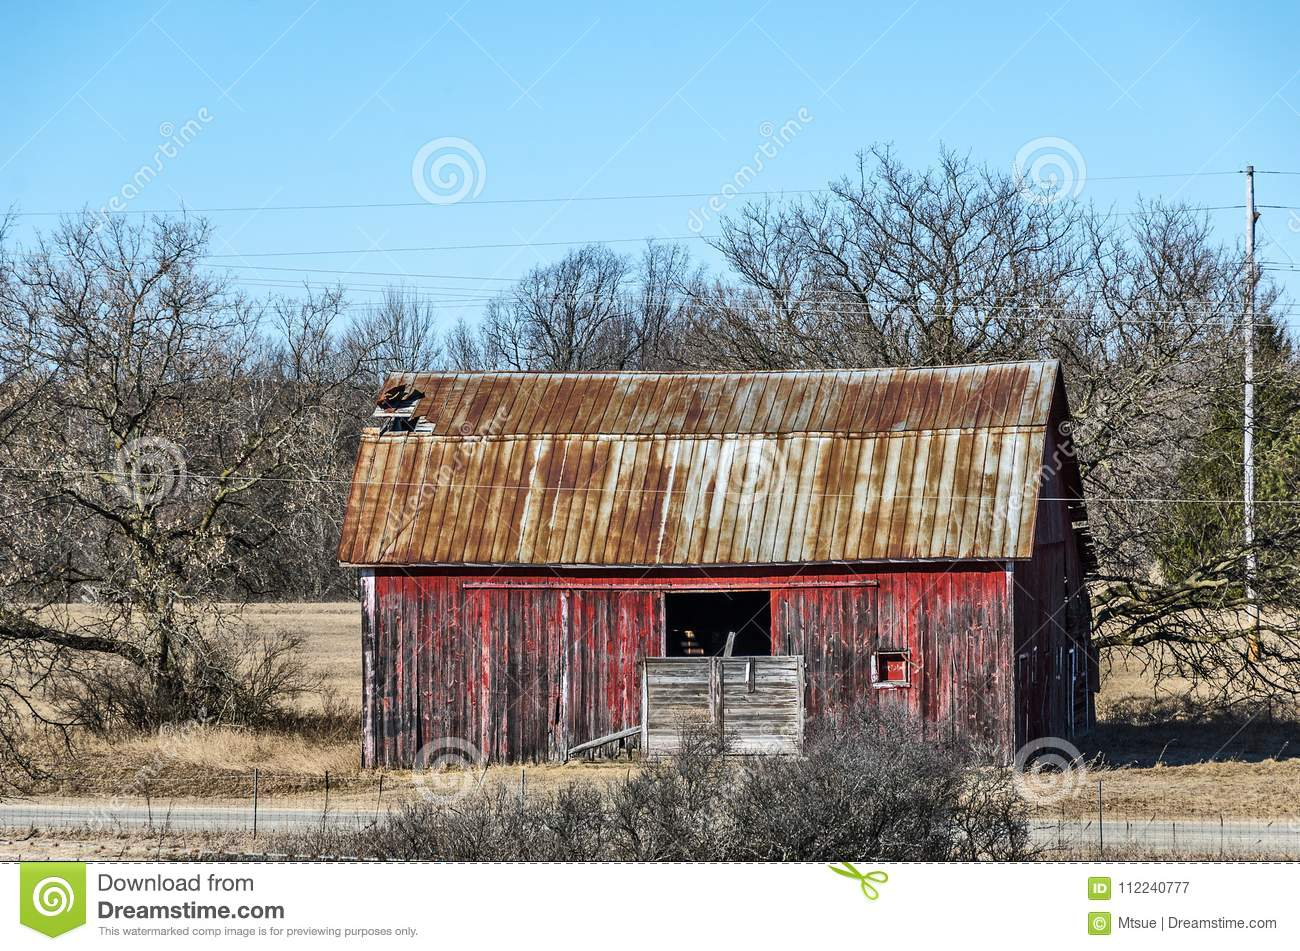 Red Barn With Rusty Metal Roof Stock Image Image Of Wood Sunlight 112240777